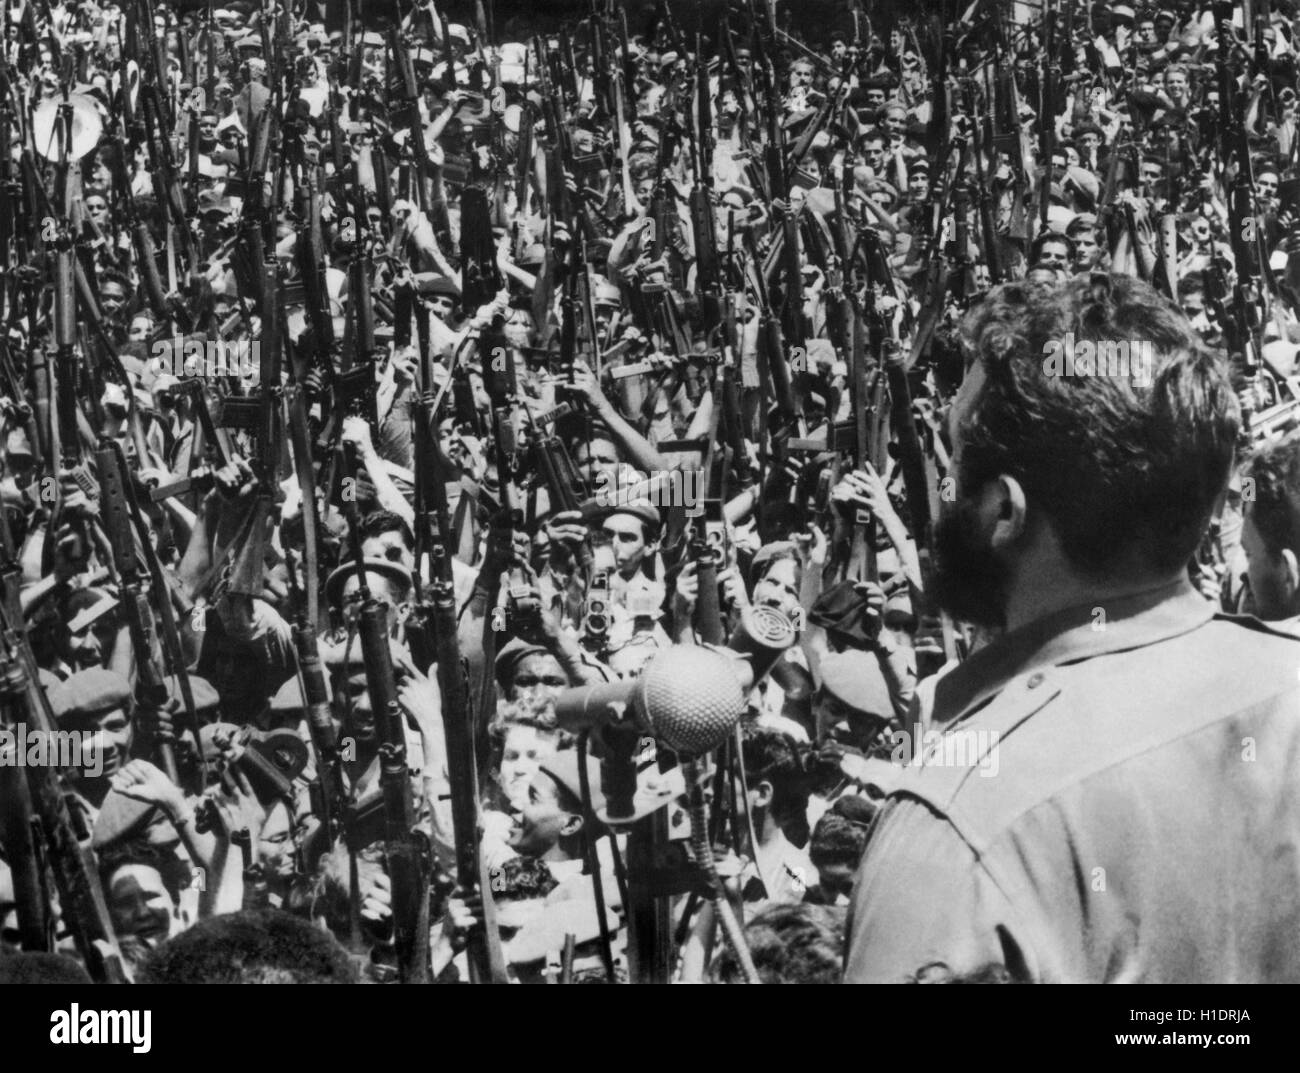 Cuban Revolution leader and Prime Minister Fidel Castro giving a speech in Central Havana on April 16, 1961 (the Stock Photo